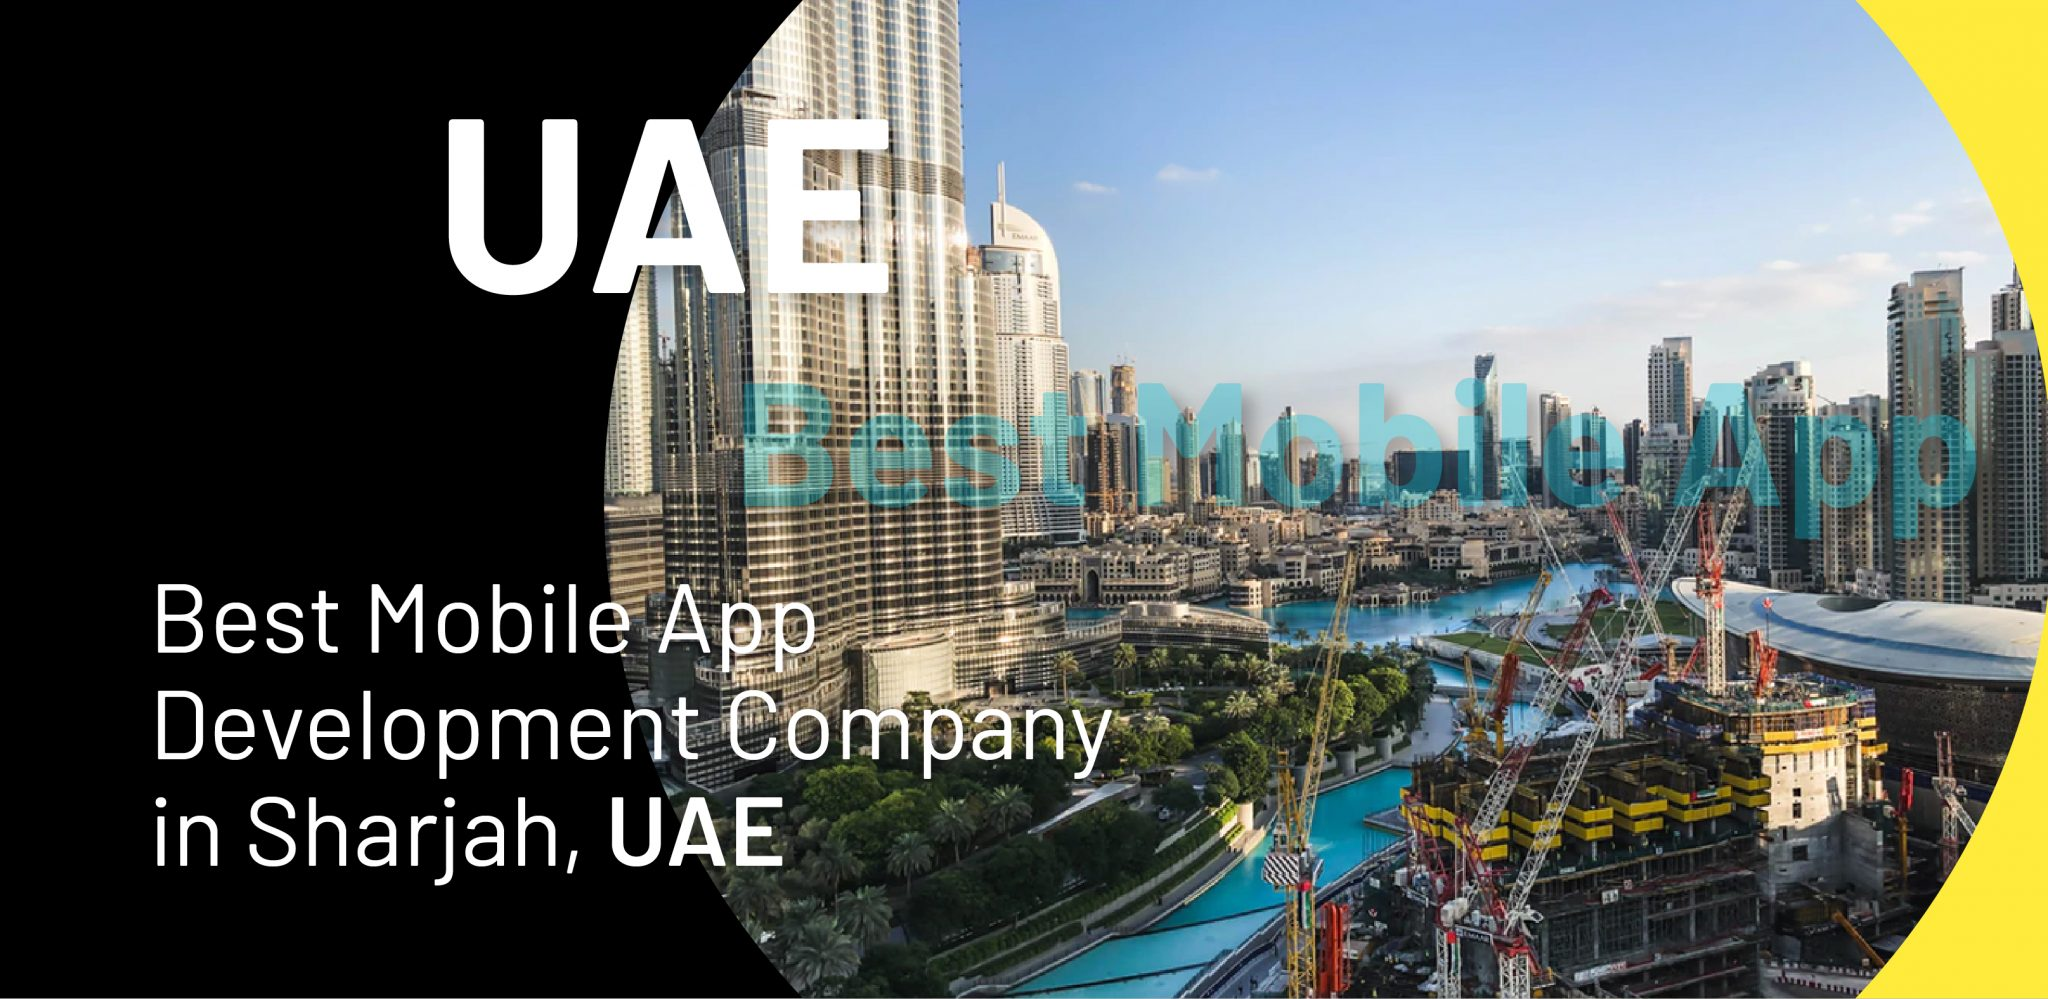 Best Mobile App Development Company in Sharjah, UAE - WebClues Infotech